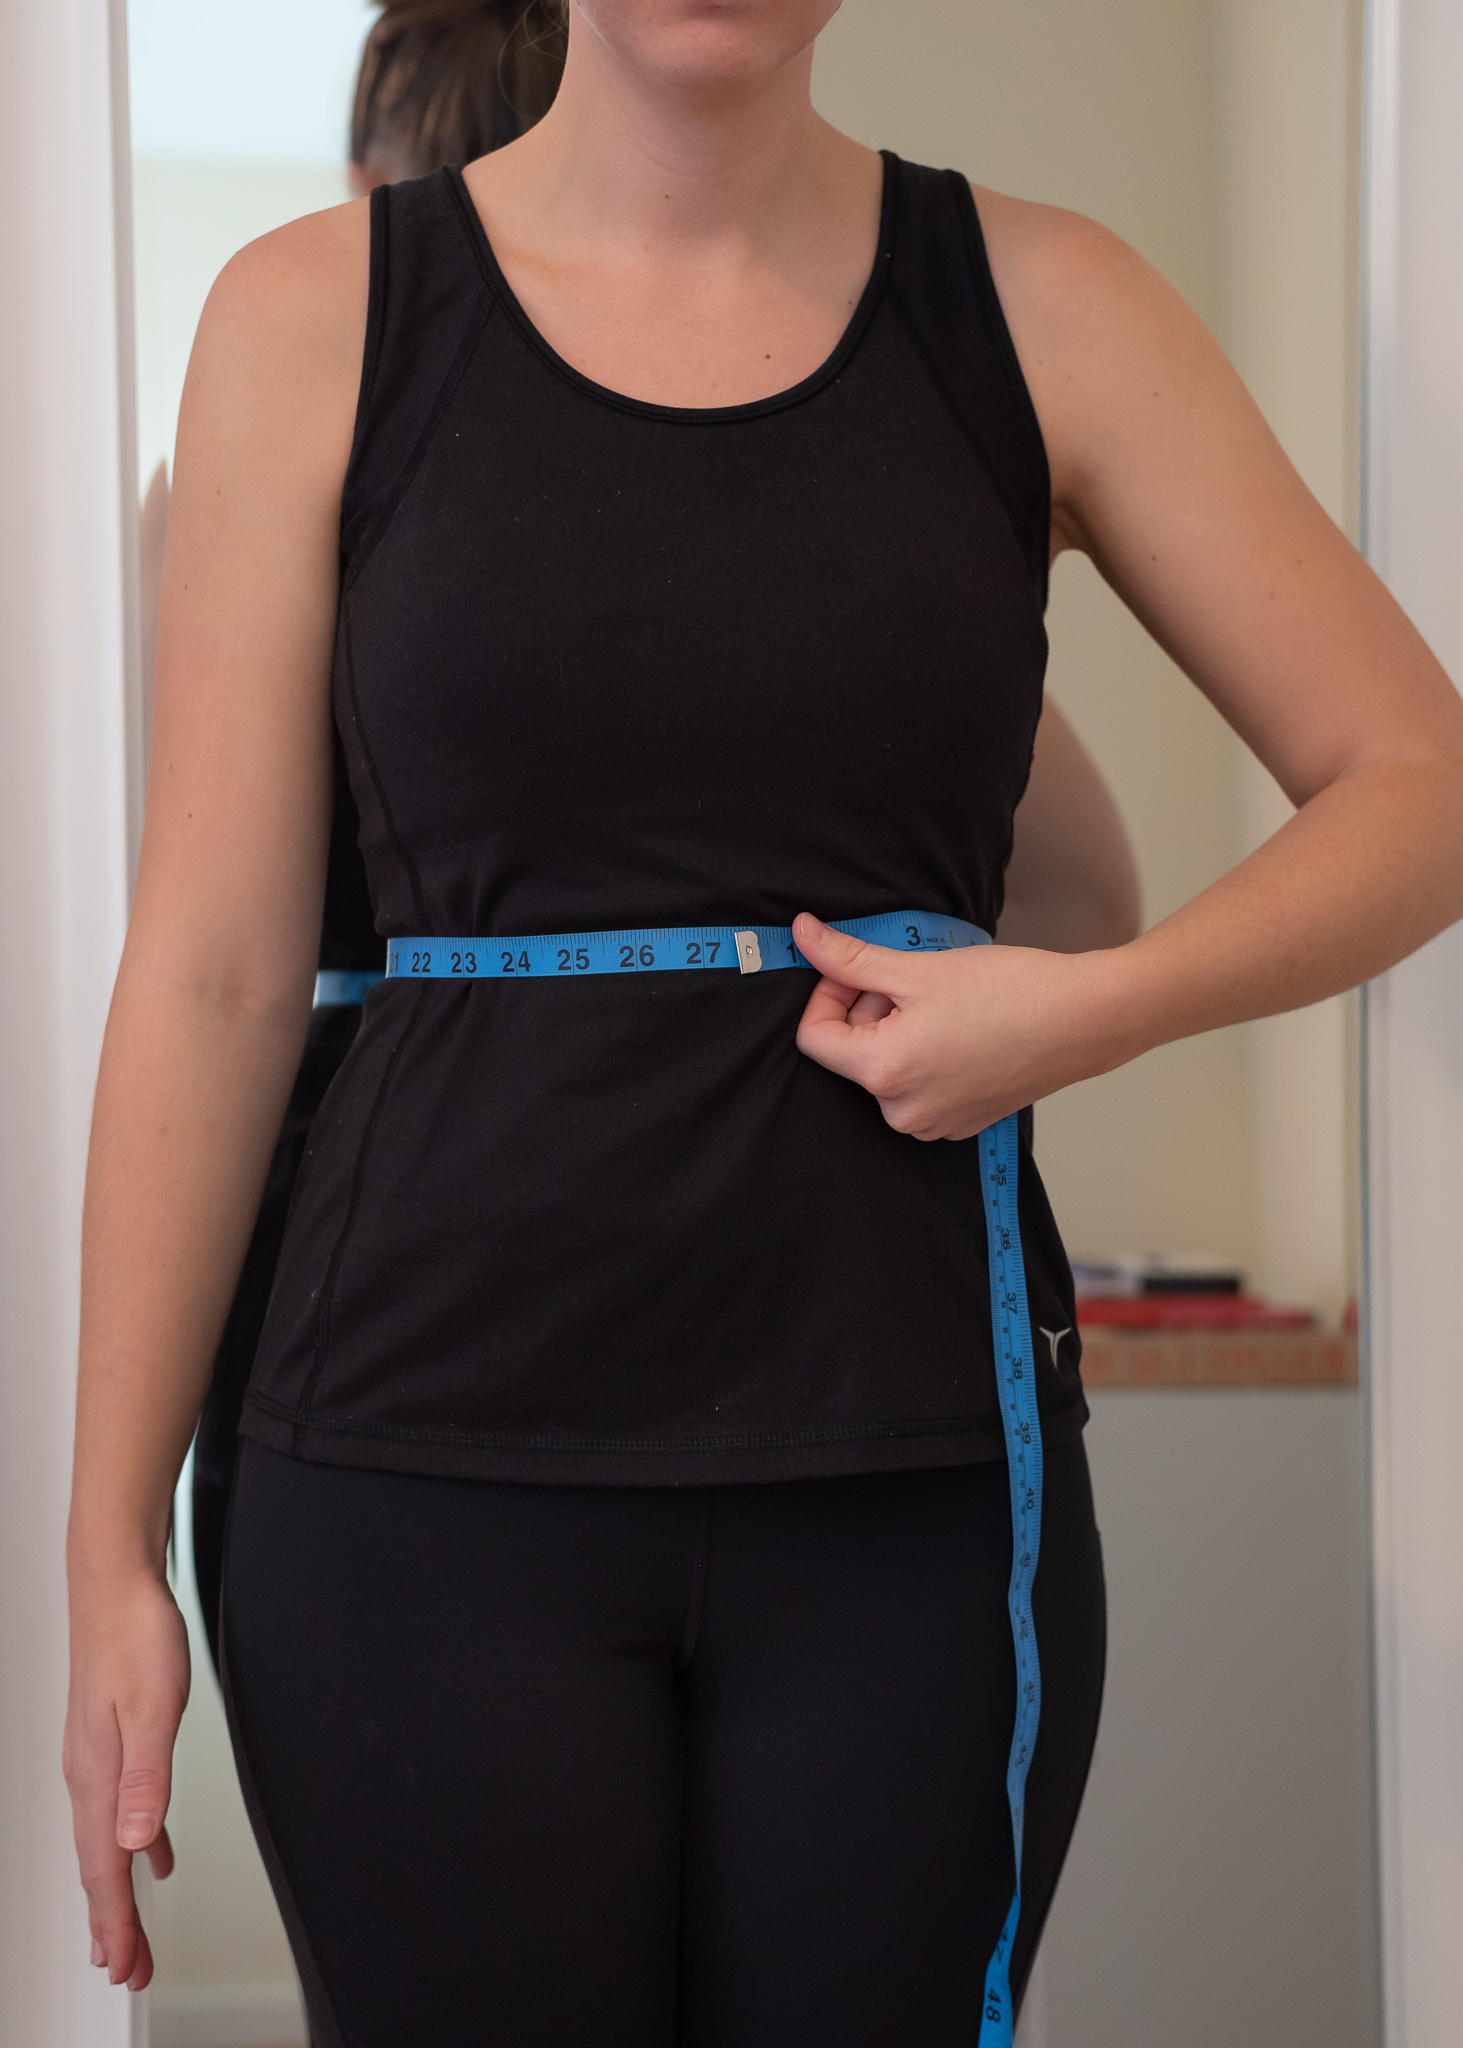 How to take your natural waist measurement for clothing